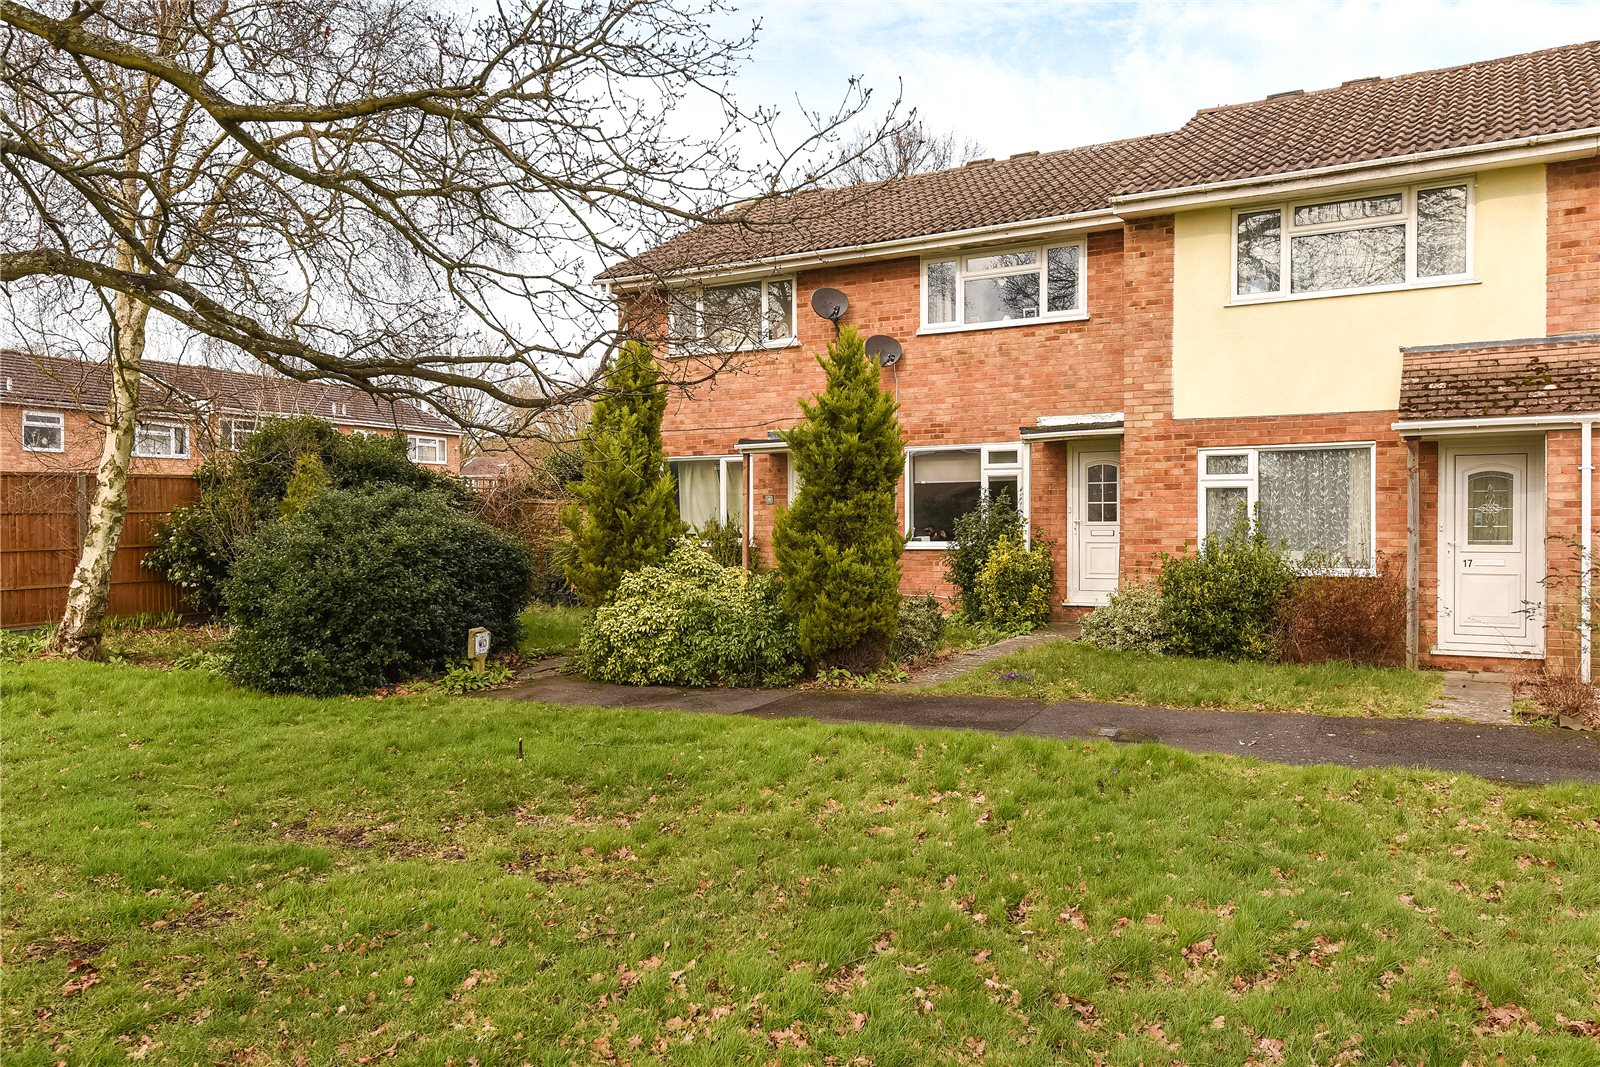 2 Bedrooms Terraced House for sale in Keble Way, Owlsmoor, Sandhurst, Berkshire, GU47